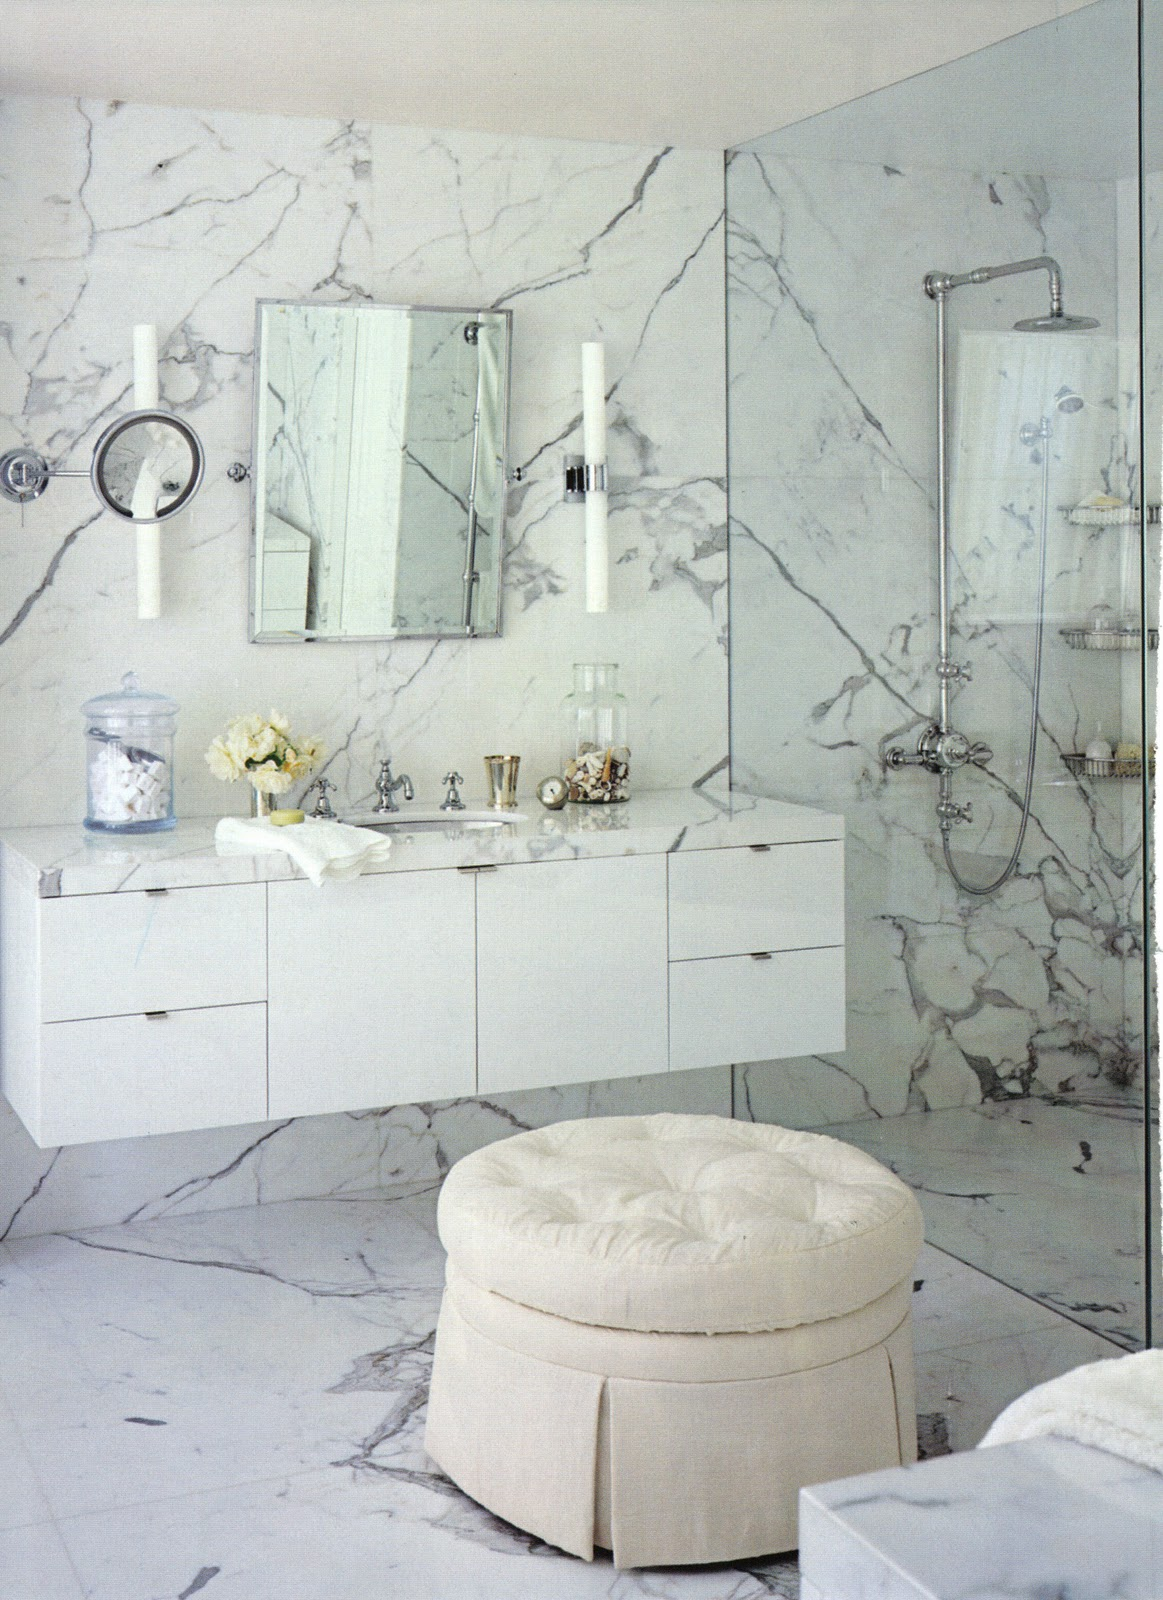 mannerofstyle: slab marble - coldstone minus the ice cream